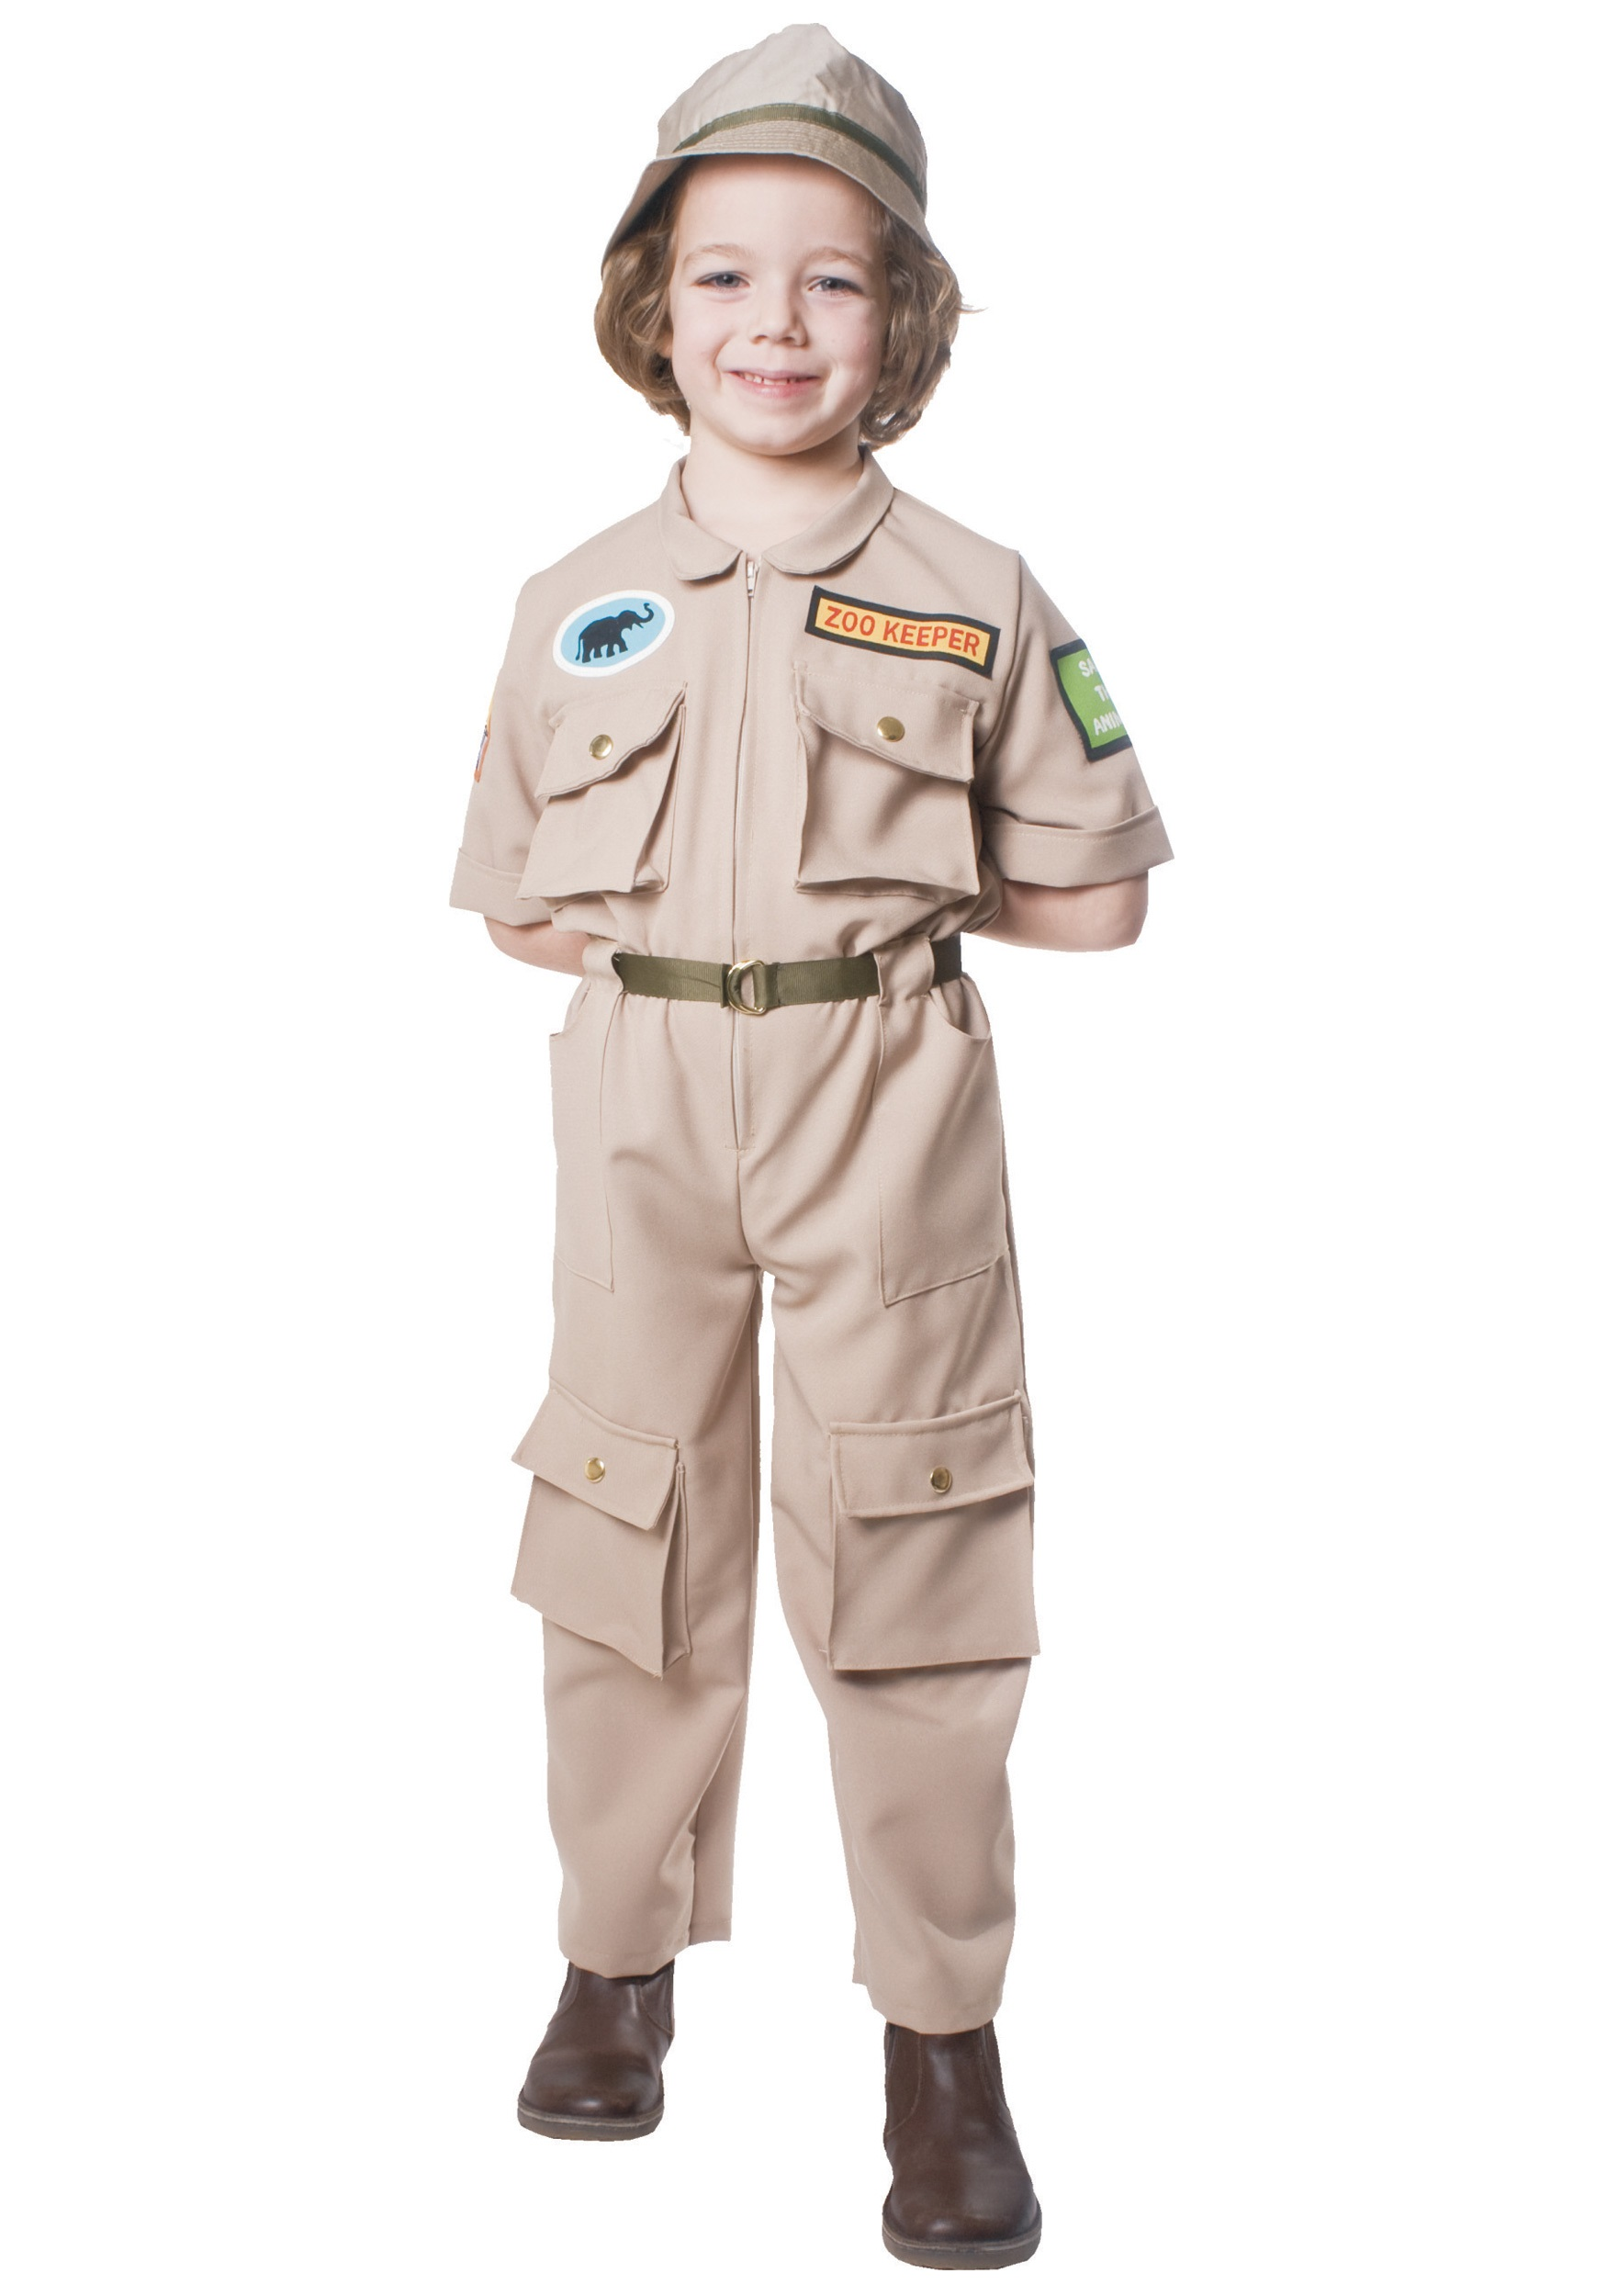 Zoo Keeper Costume For Child